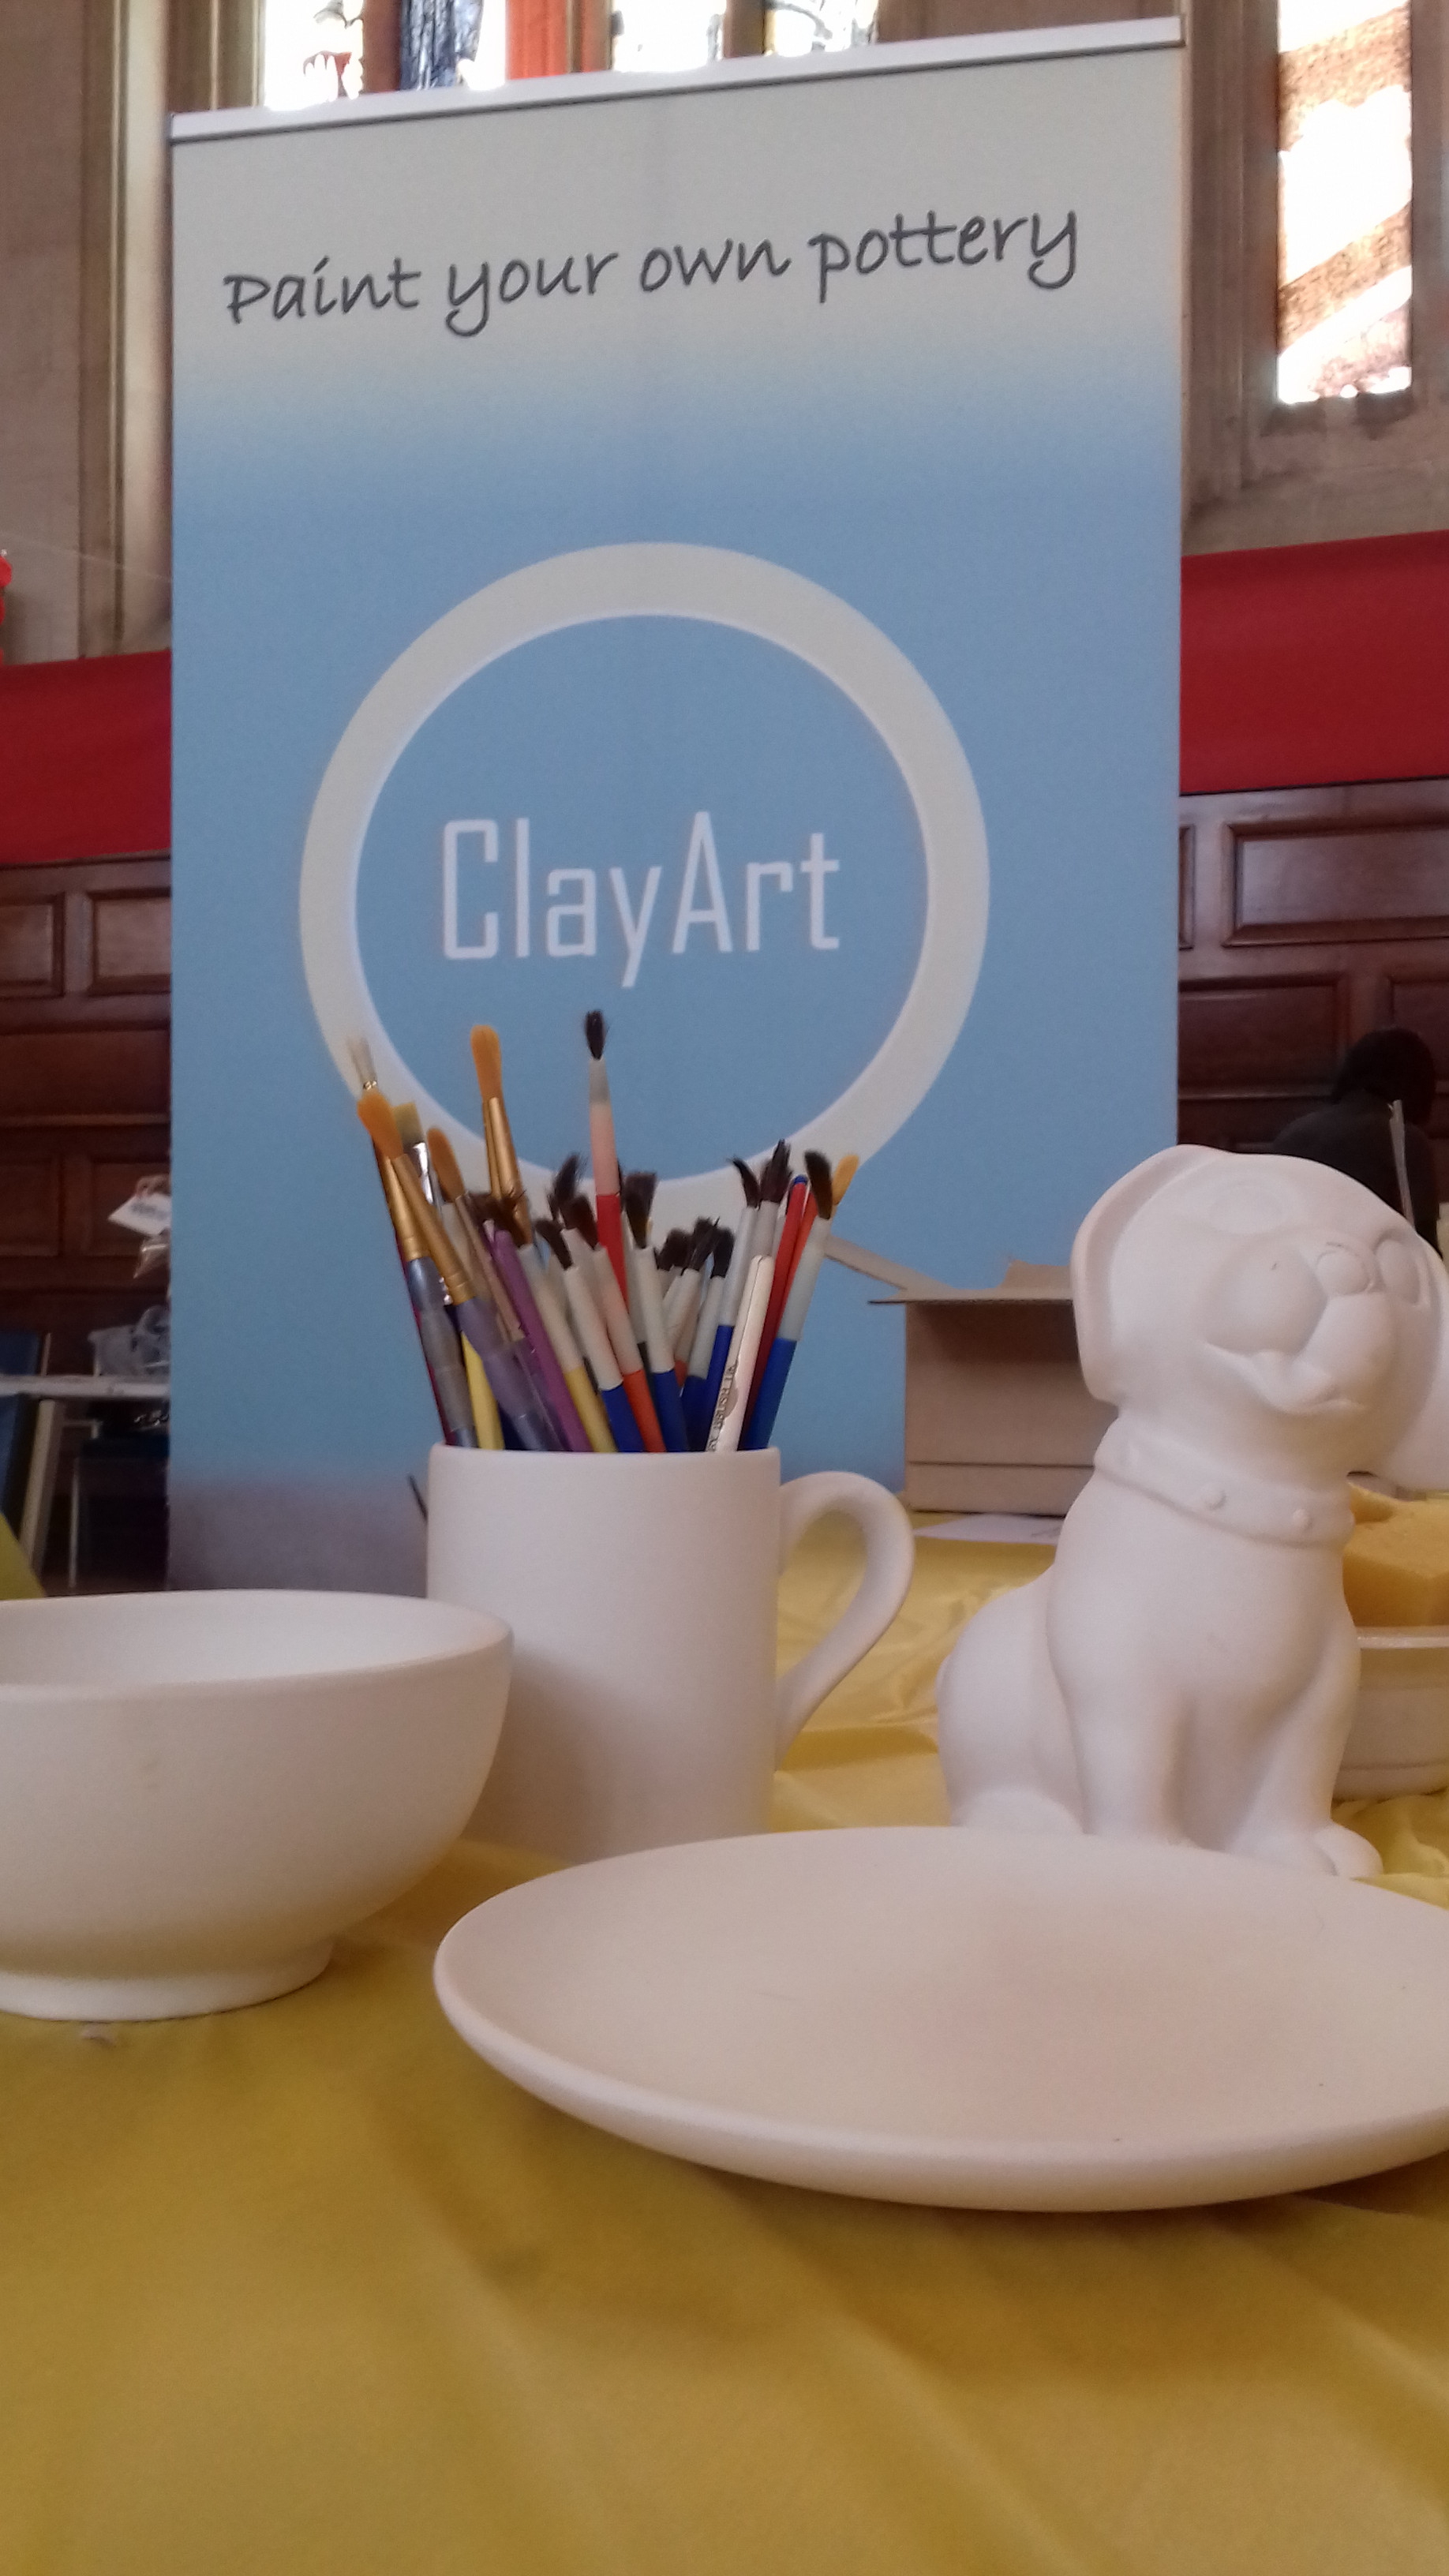 Clayart Out and About